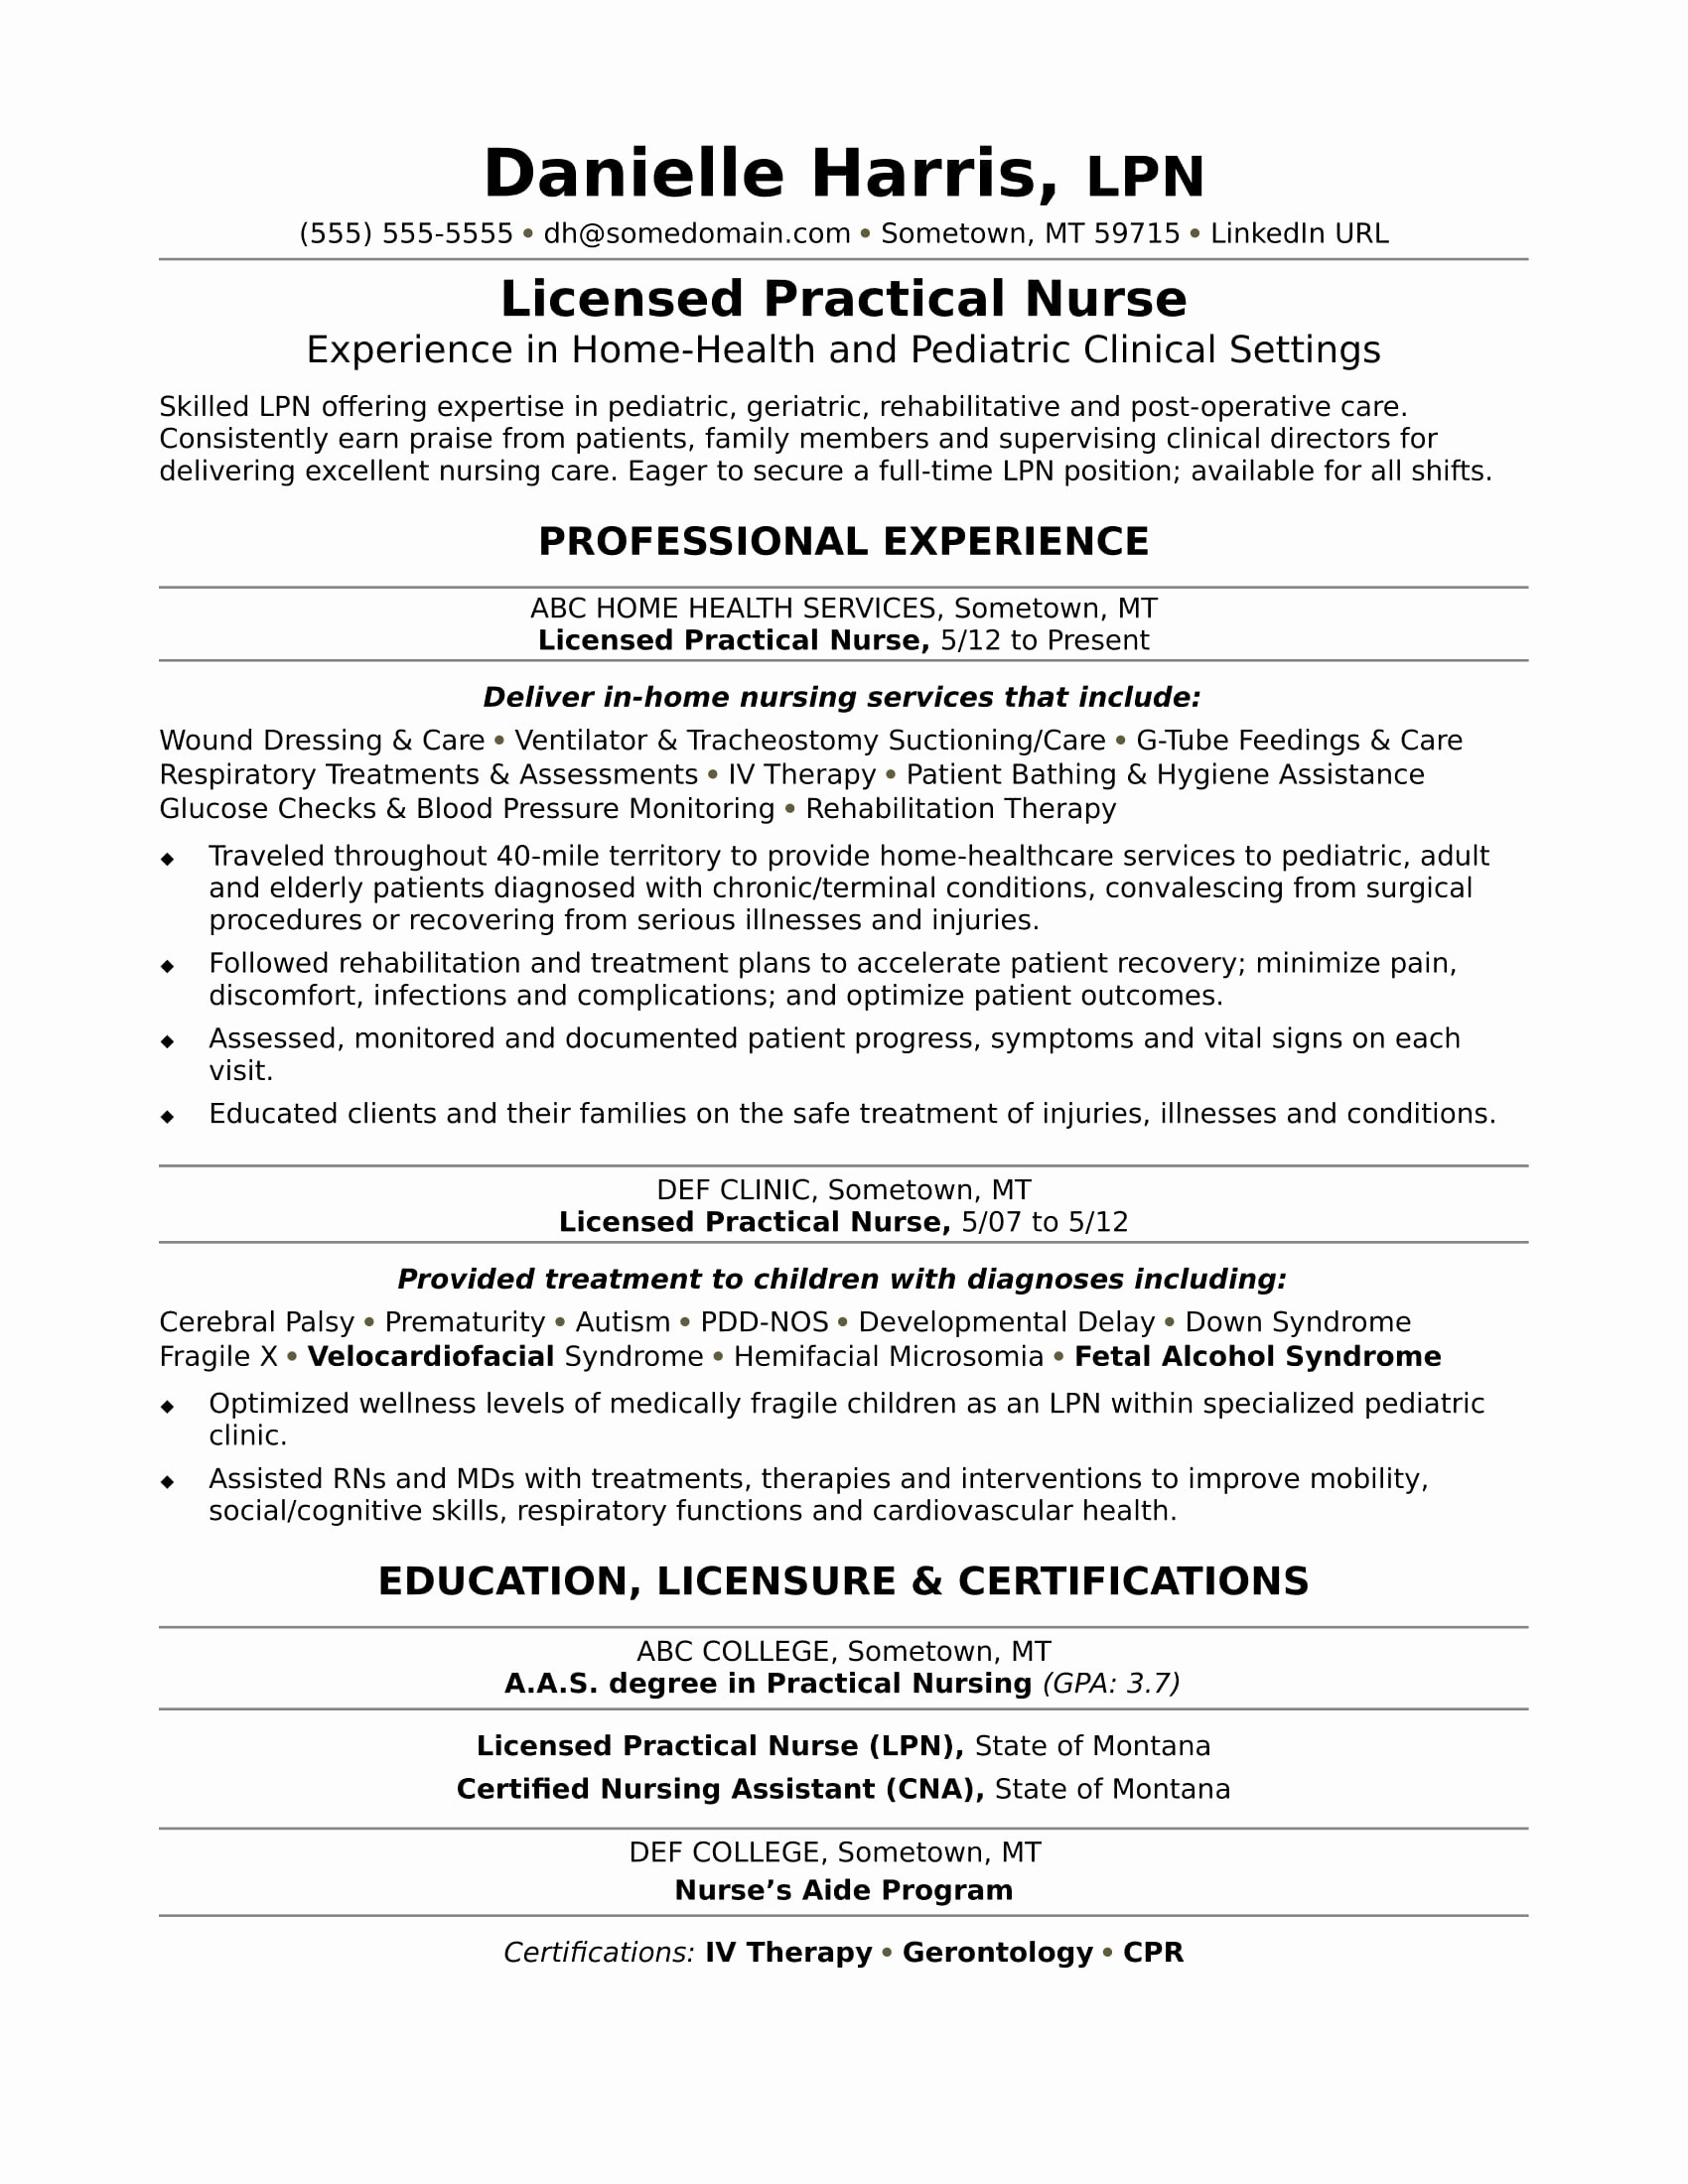 Nursing Resume Template Word - Resume for Nursing Student Inspirational Nursing Student Resume